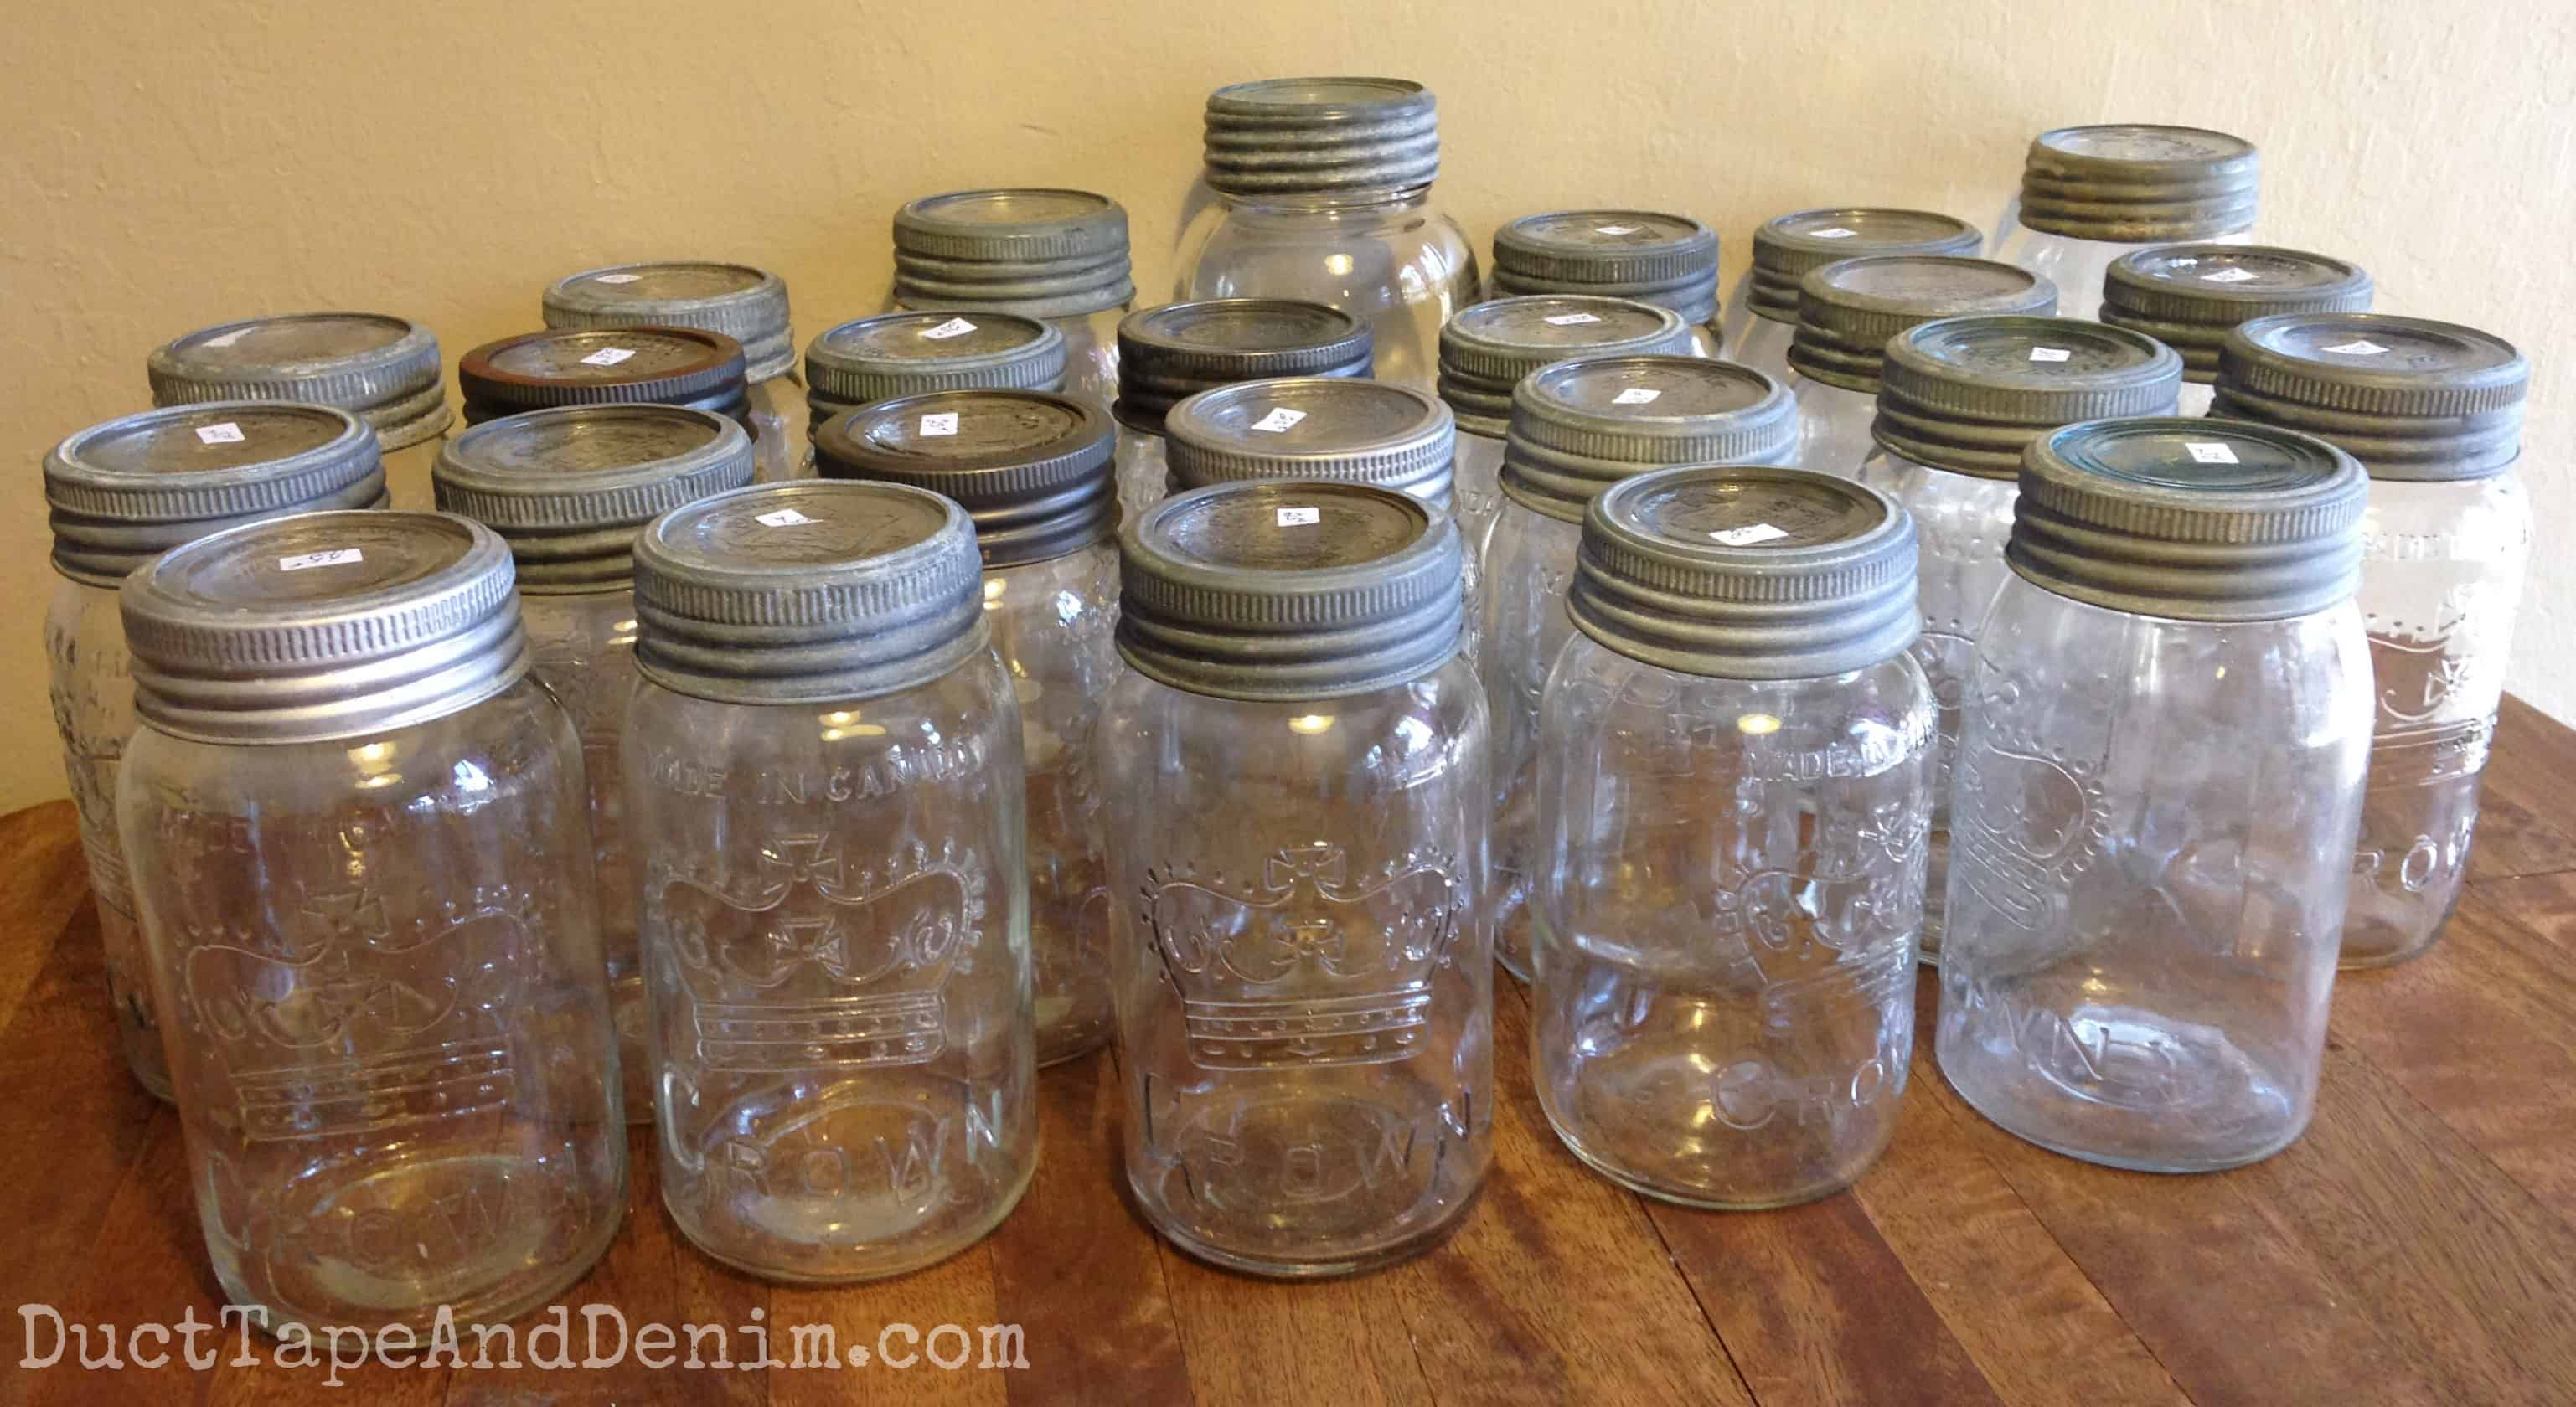 Vintage Crown canning jars from Canada